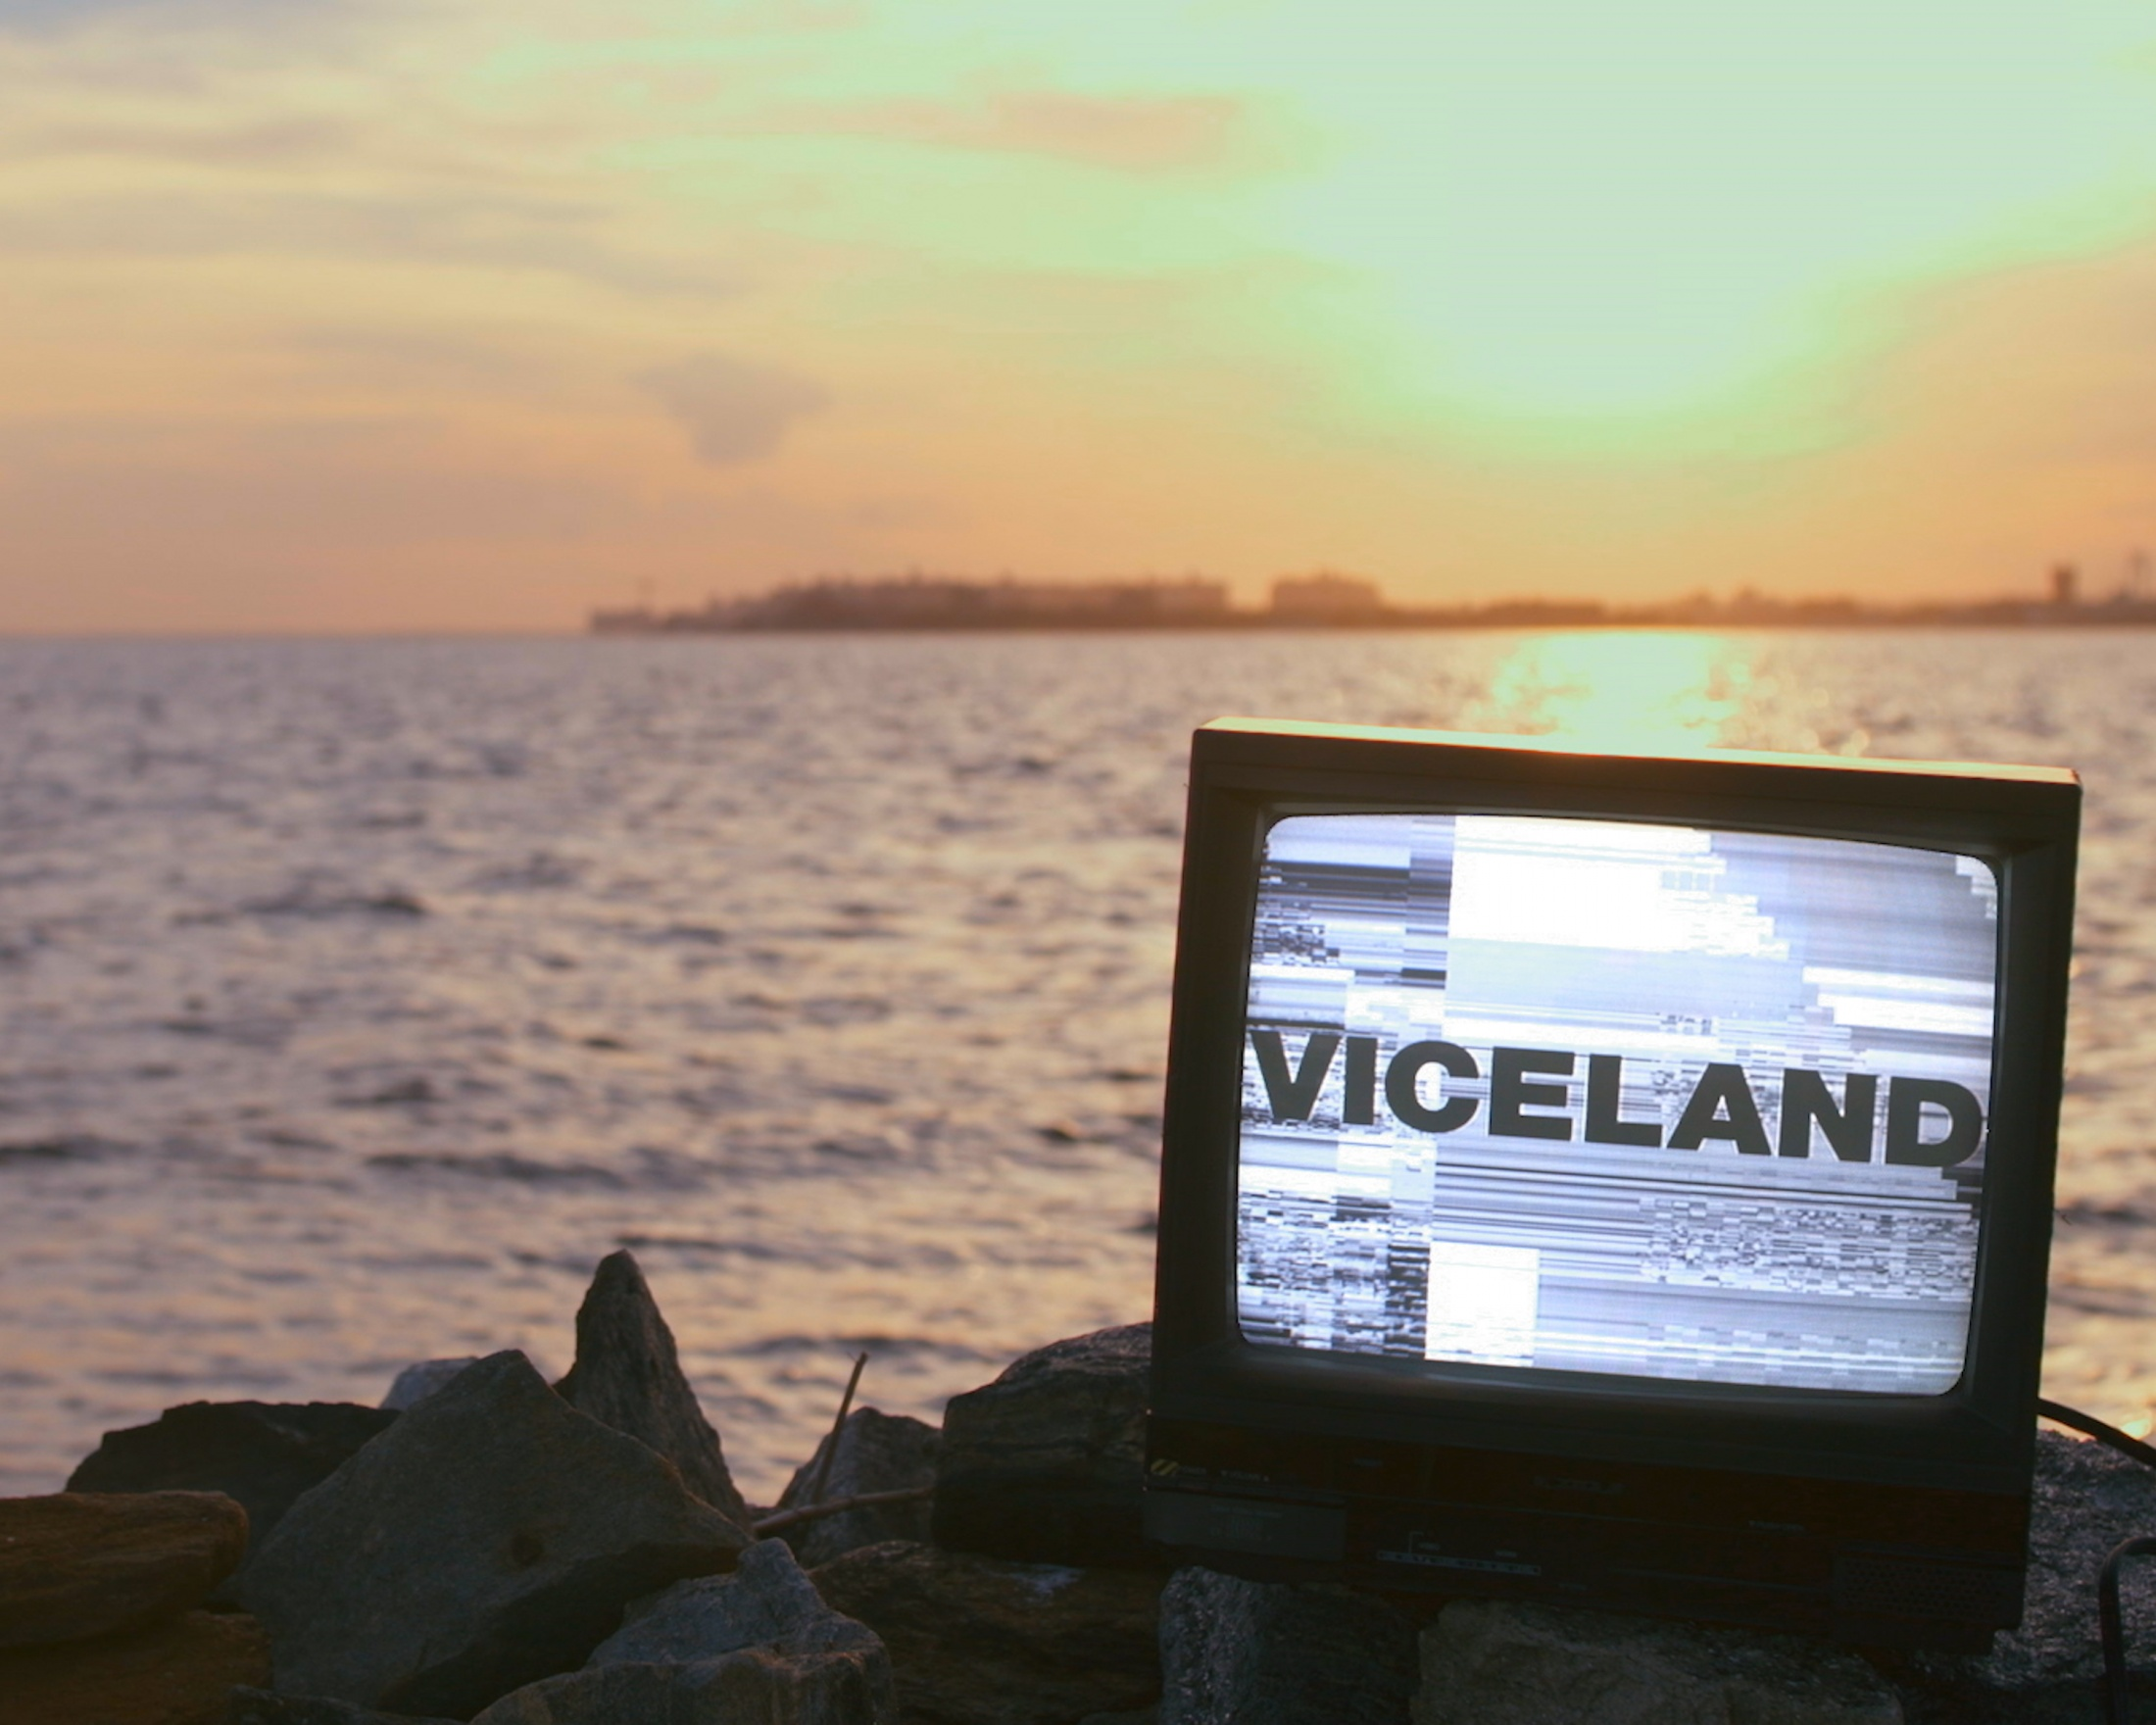 Thumbnail for VICELAND 2017 Sizzle